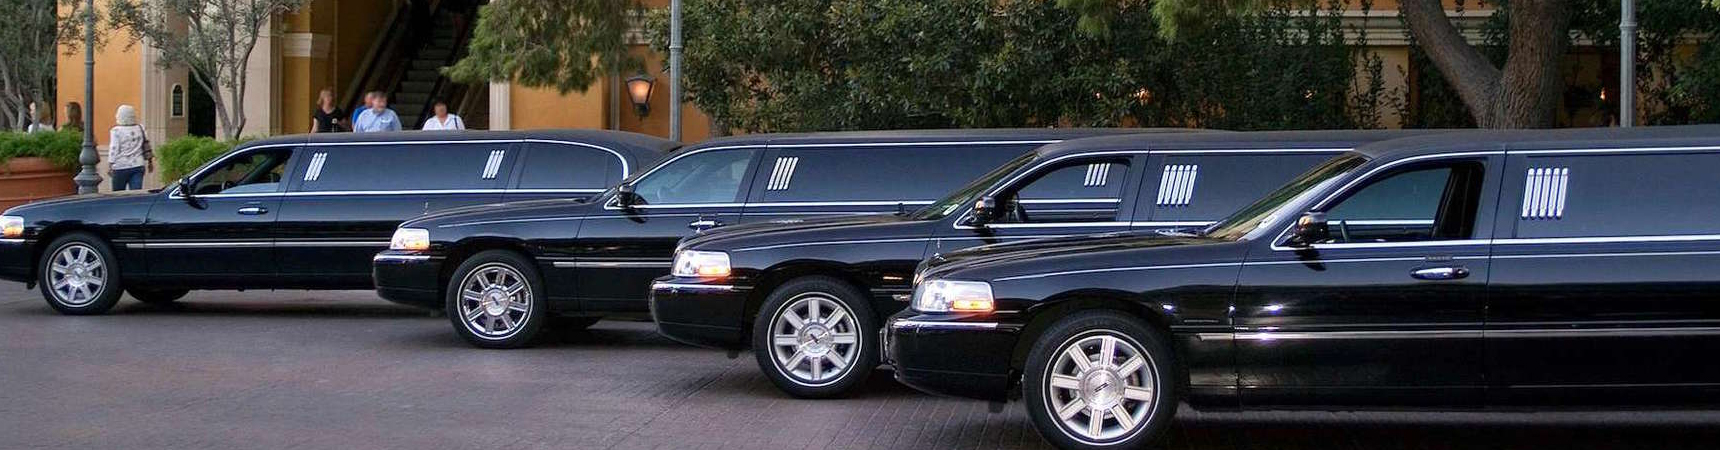 Essential Etiquette in Using Calgary Limo Service